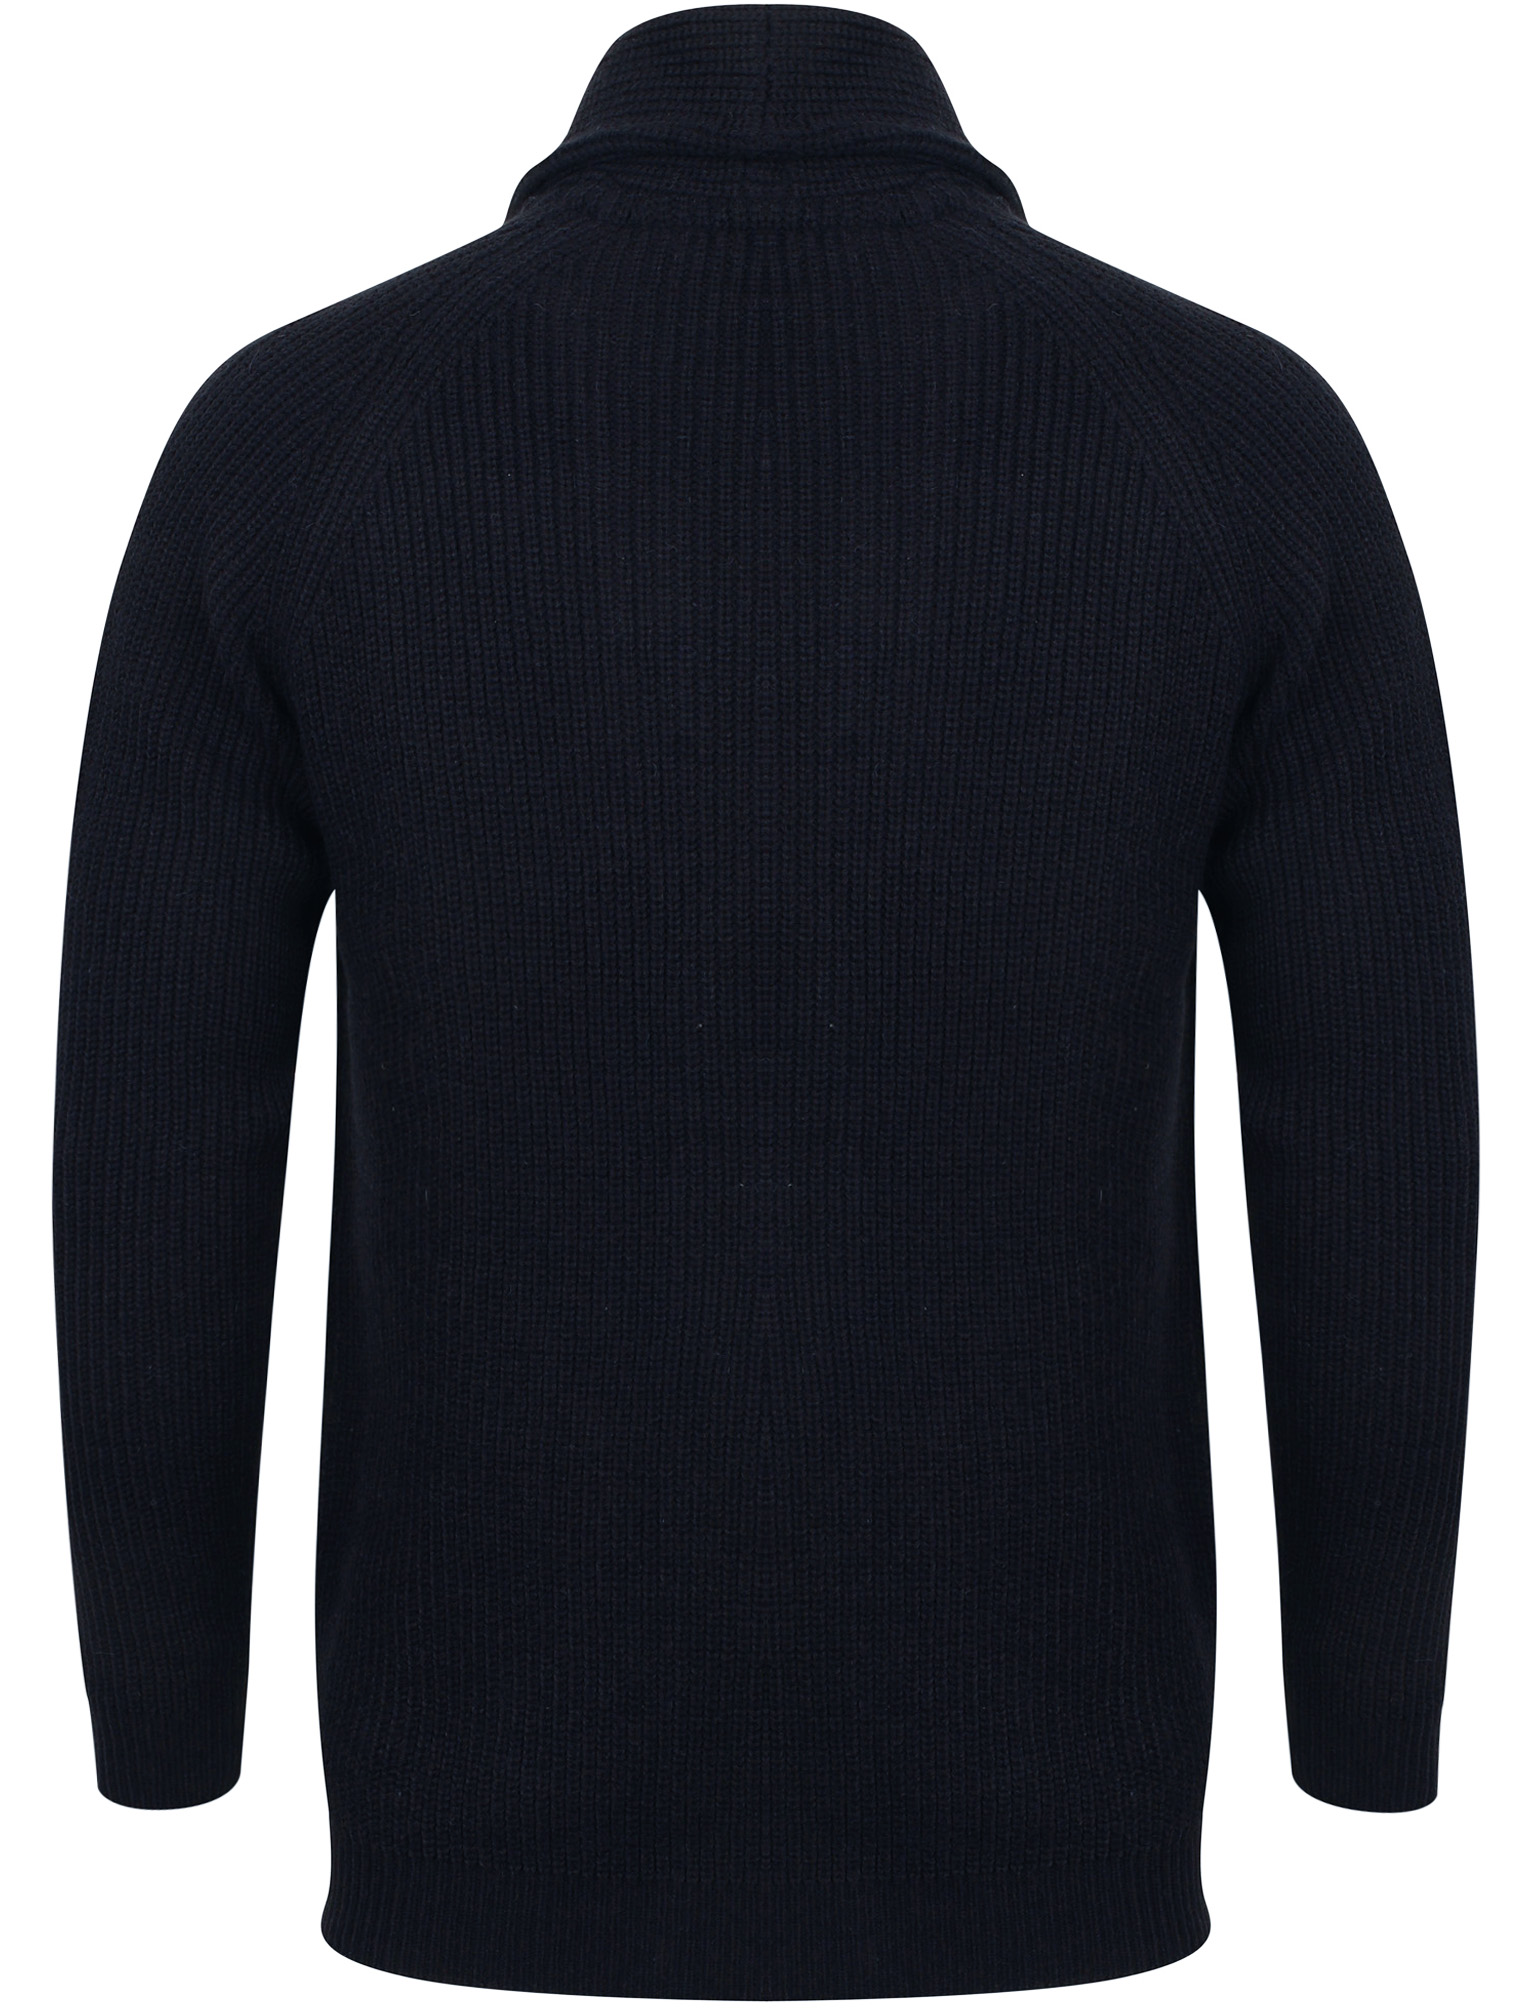 New-Mens-Tokyo-Laundry-Shawl-Neck-Long-Sleeve-Wool-Blend-Cardigans-Size-S-XXL thumbnail 3